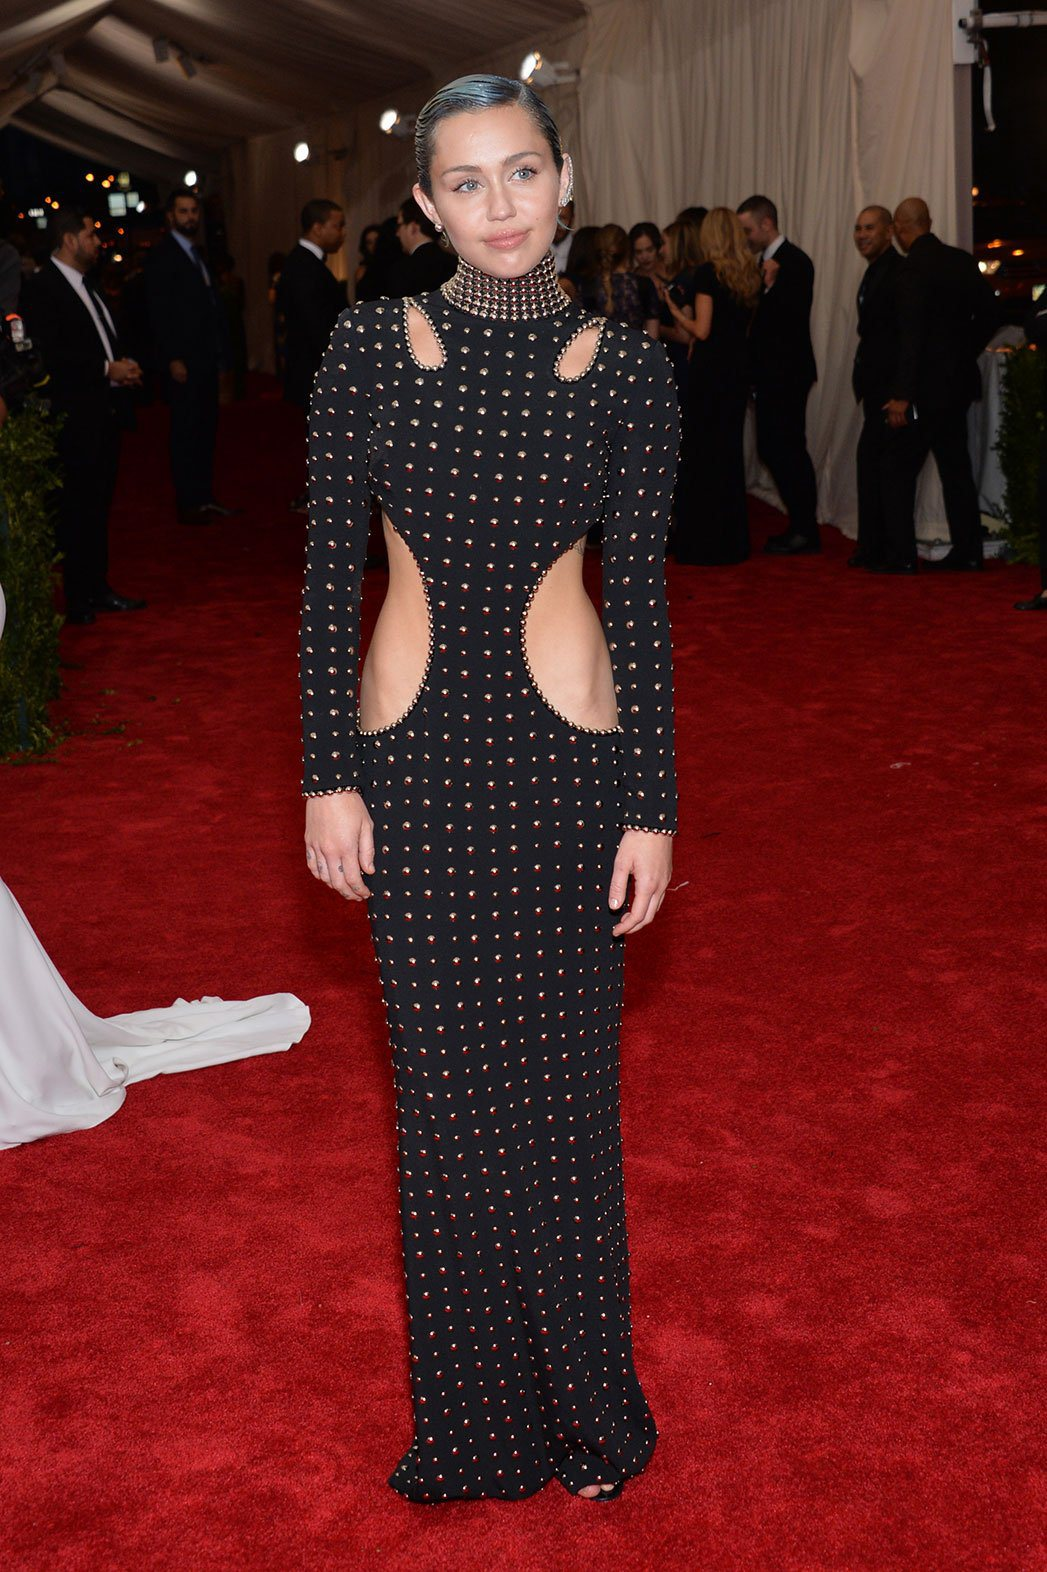 miley-cyrus-in-a-black-studded-cut-out-dress-by-alexander-wang-at-the-2015-met-gala-01